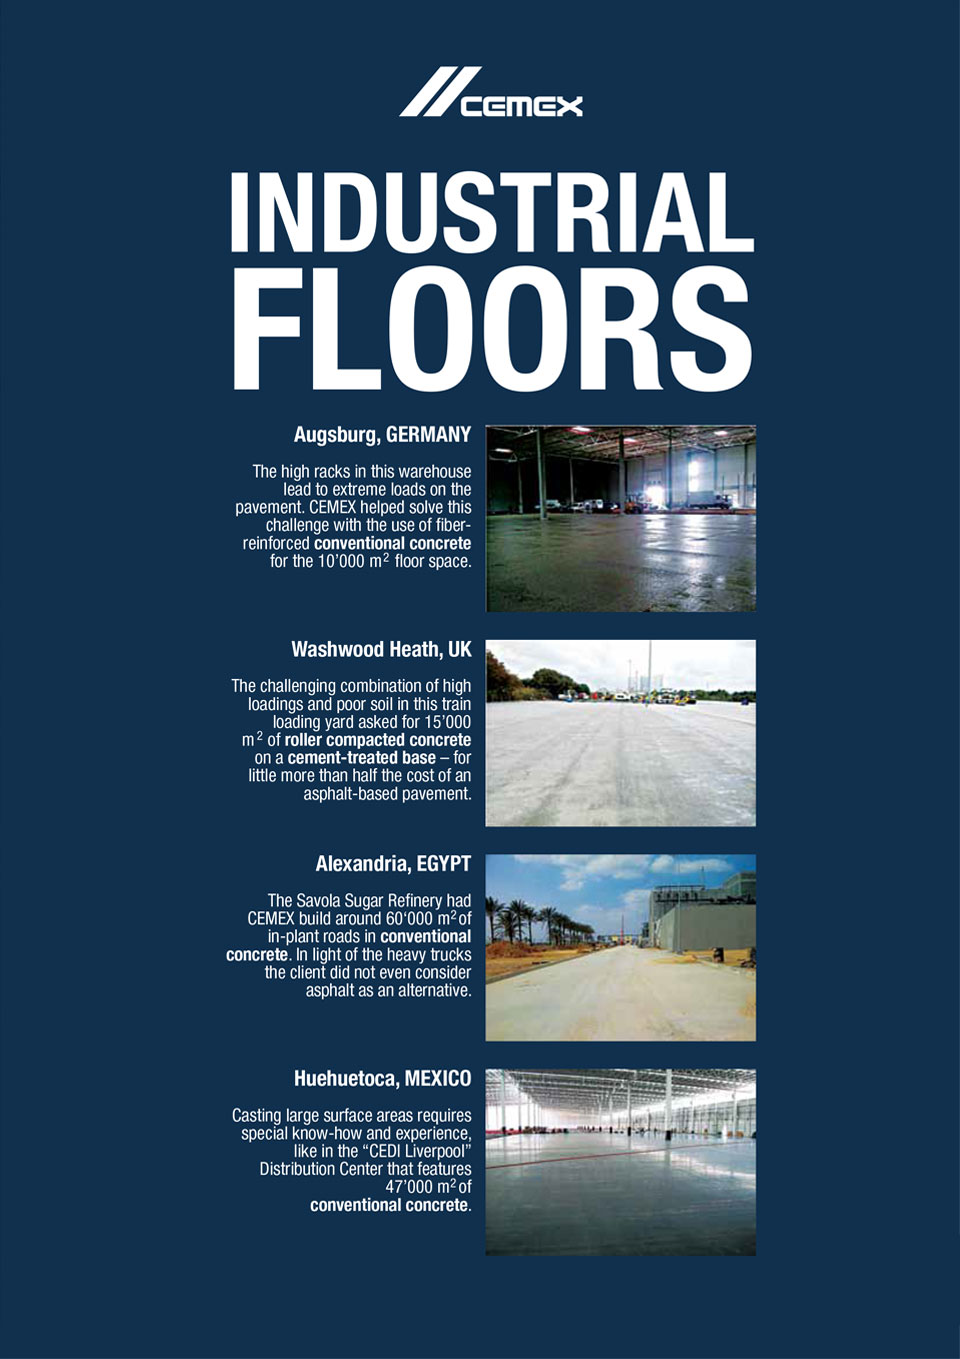 the image shows several industrial floors CEMEX has helped with the construction of